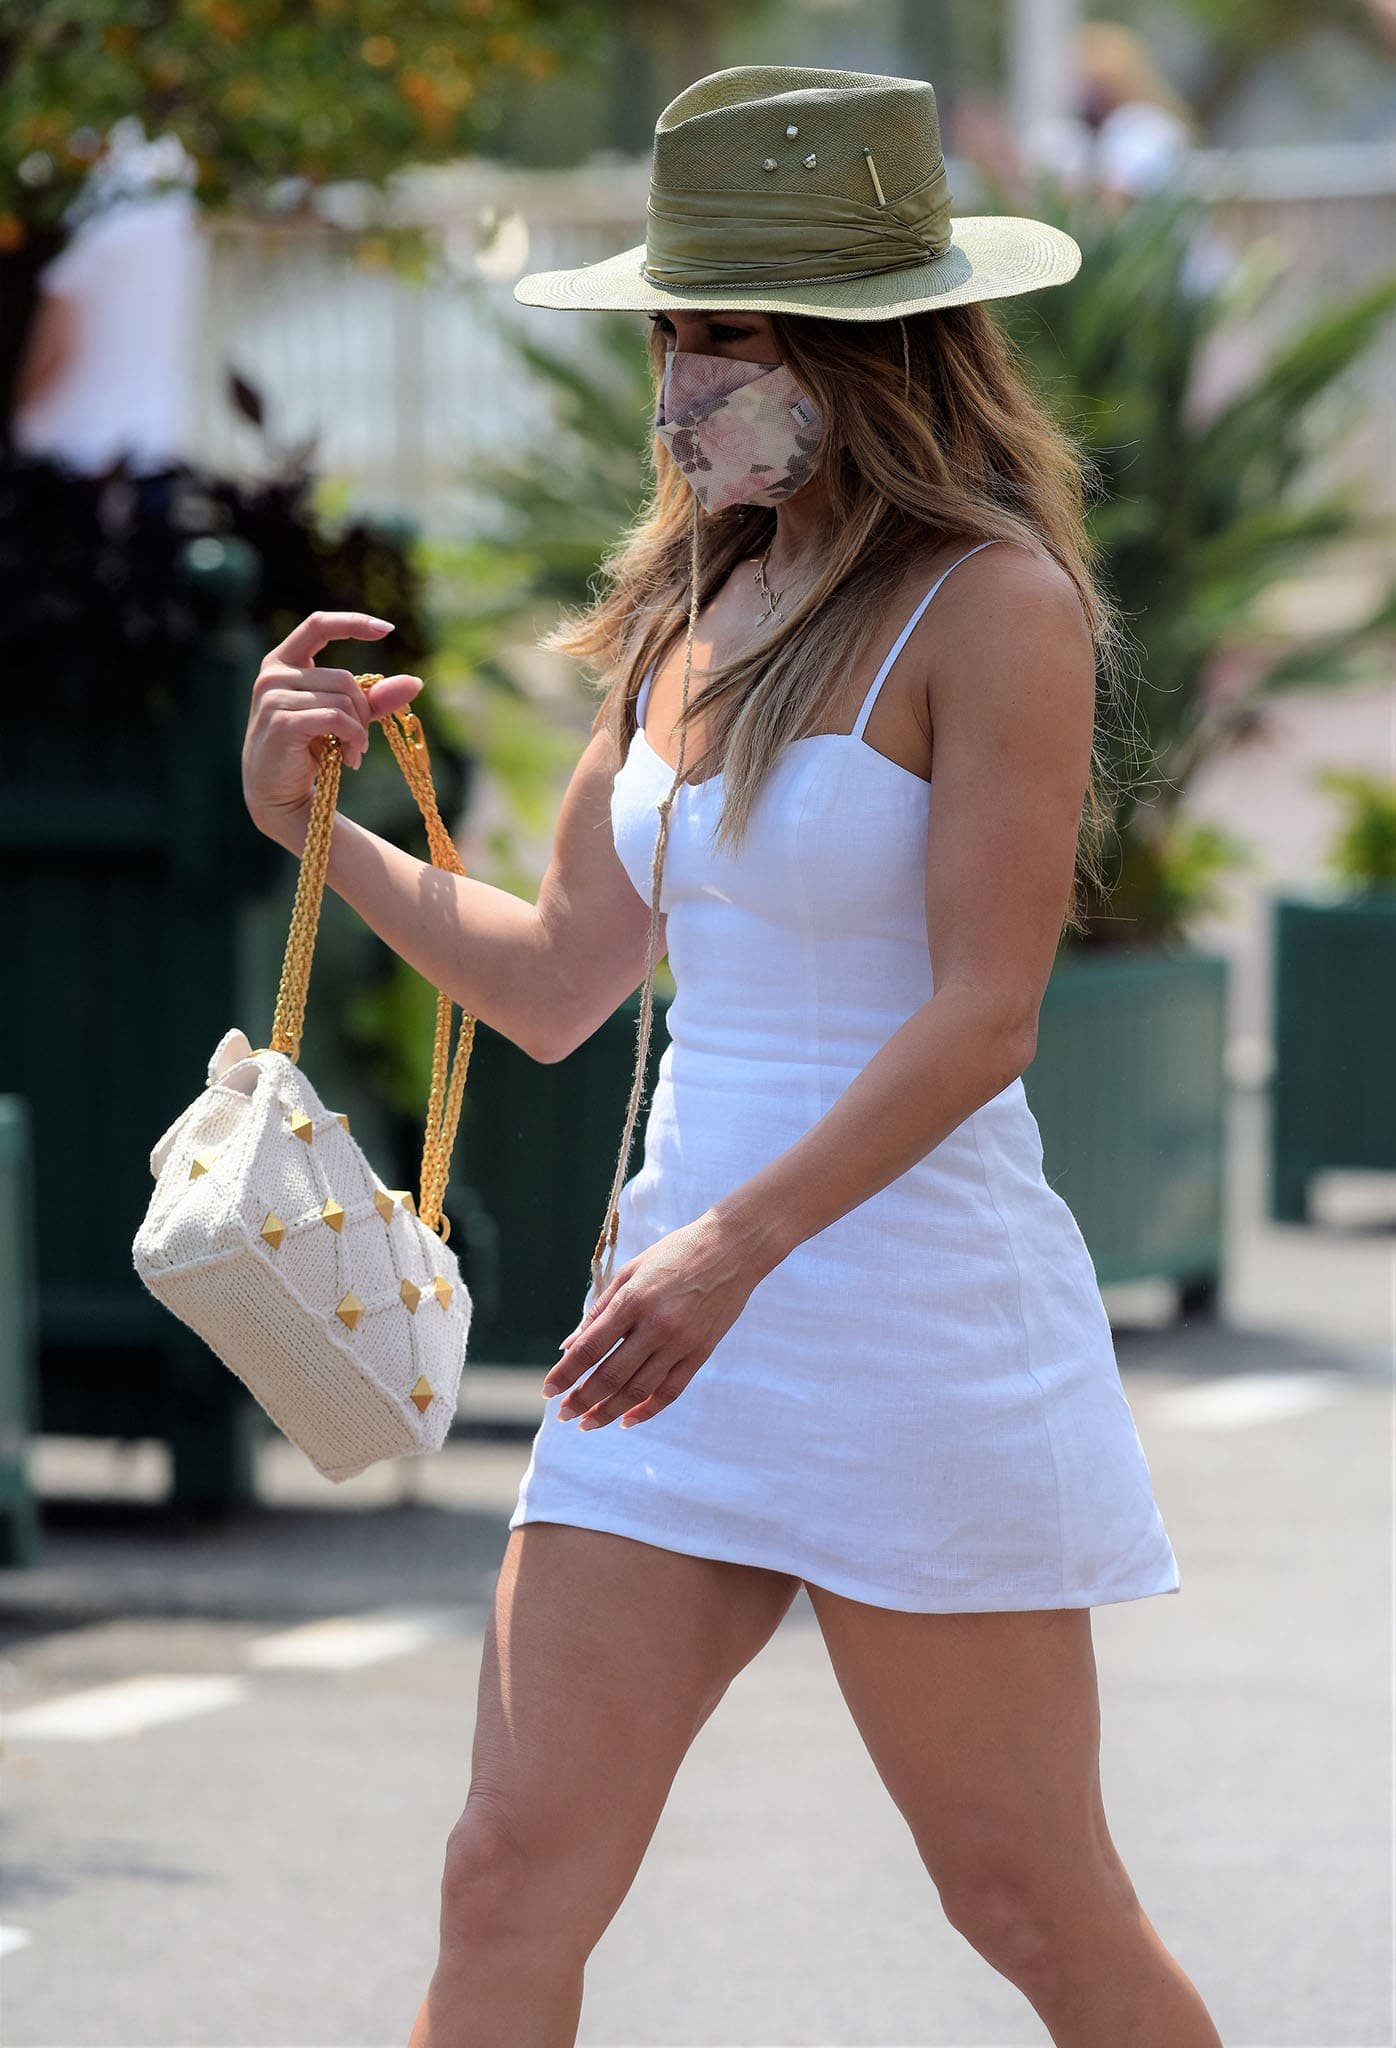 Jennifer Lopez flaunts her incredibly toned figure in a white Reformation mini dress with spaghetti straps